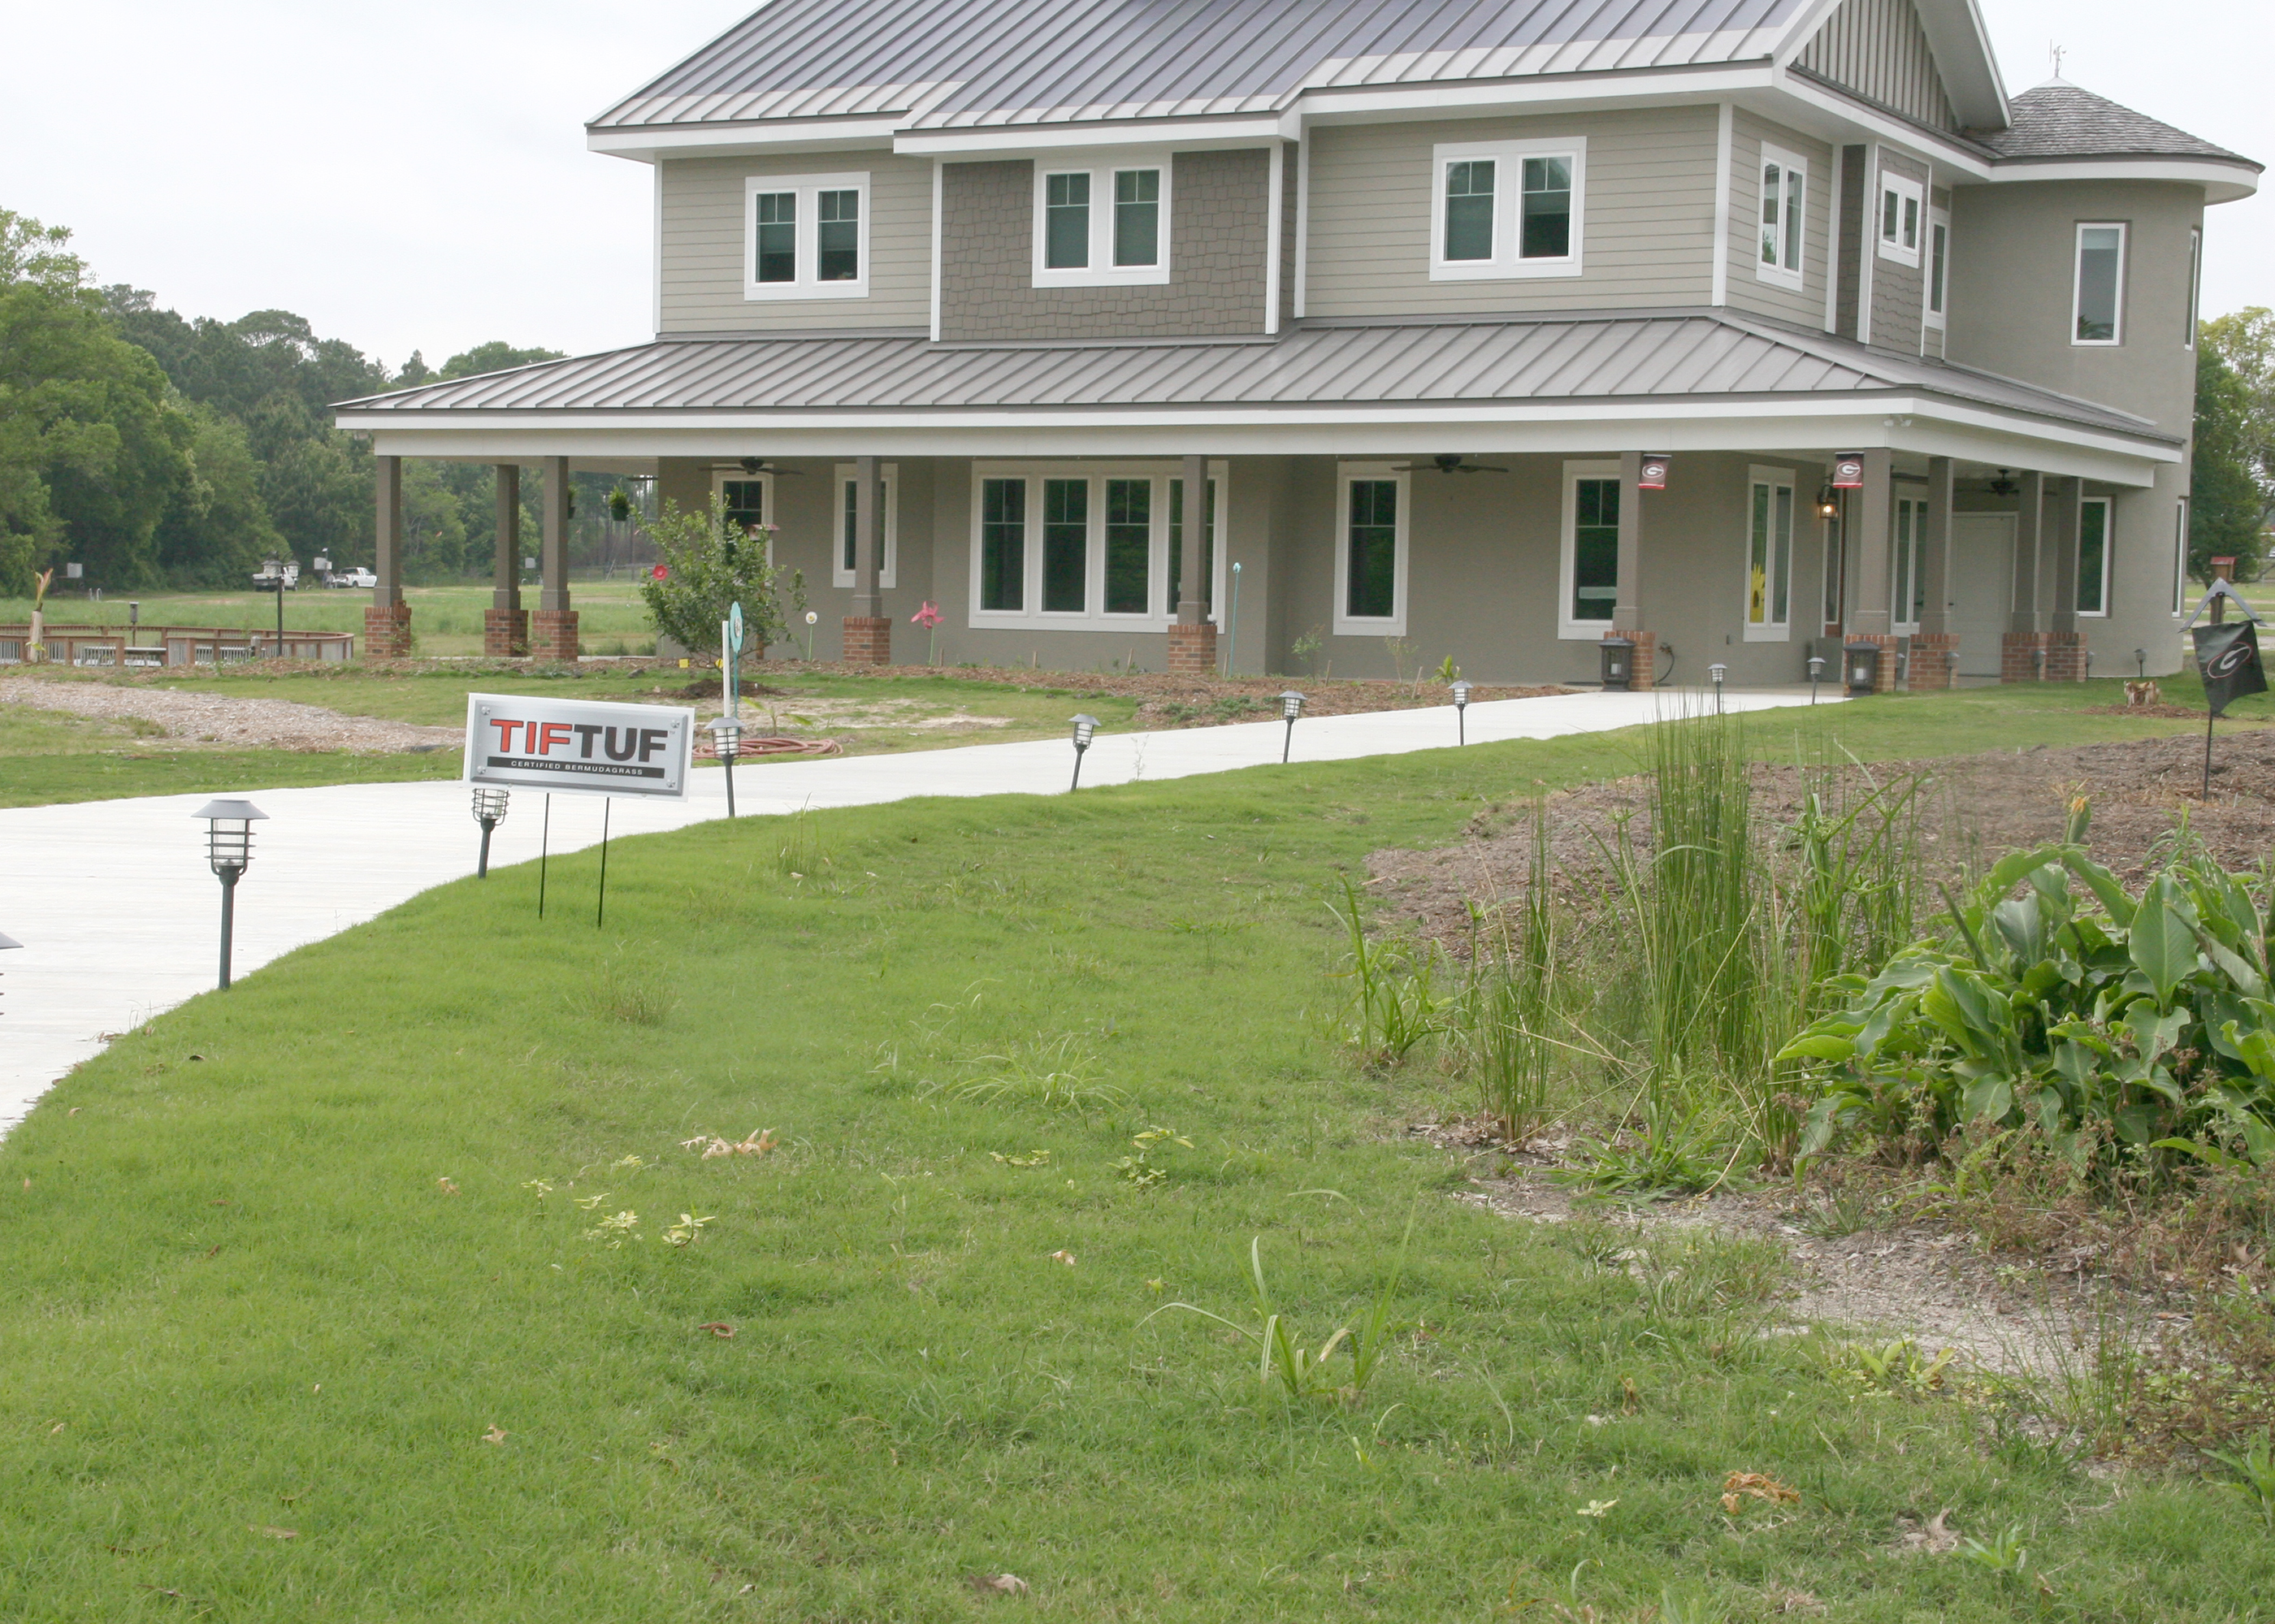 'TifTuf' turfgrass is planted in front of the Future Farmstead on the UGA Tifton Campus Conference Center.